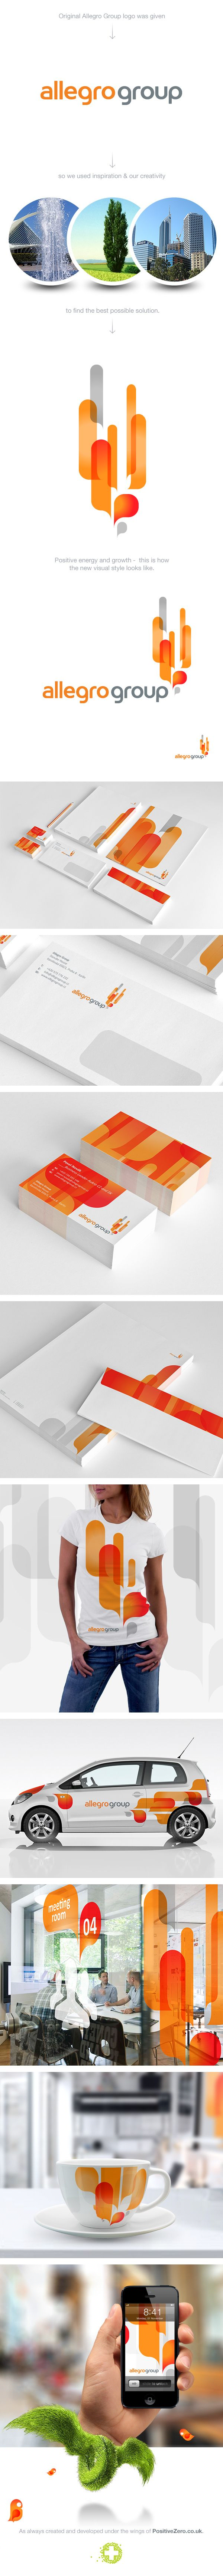 Allegro Group - #CorporateIdentity by PositiveZero.co.uk, via #Behance #Branding